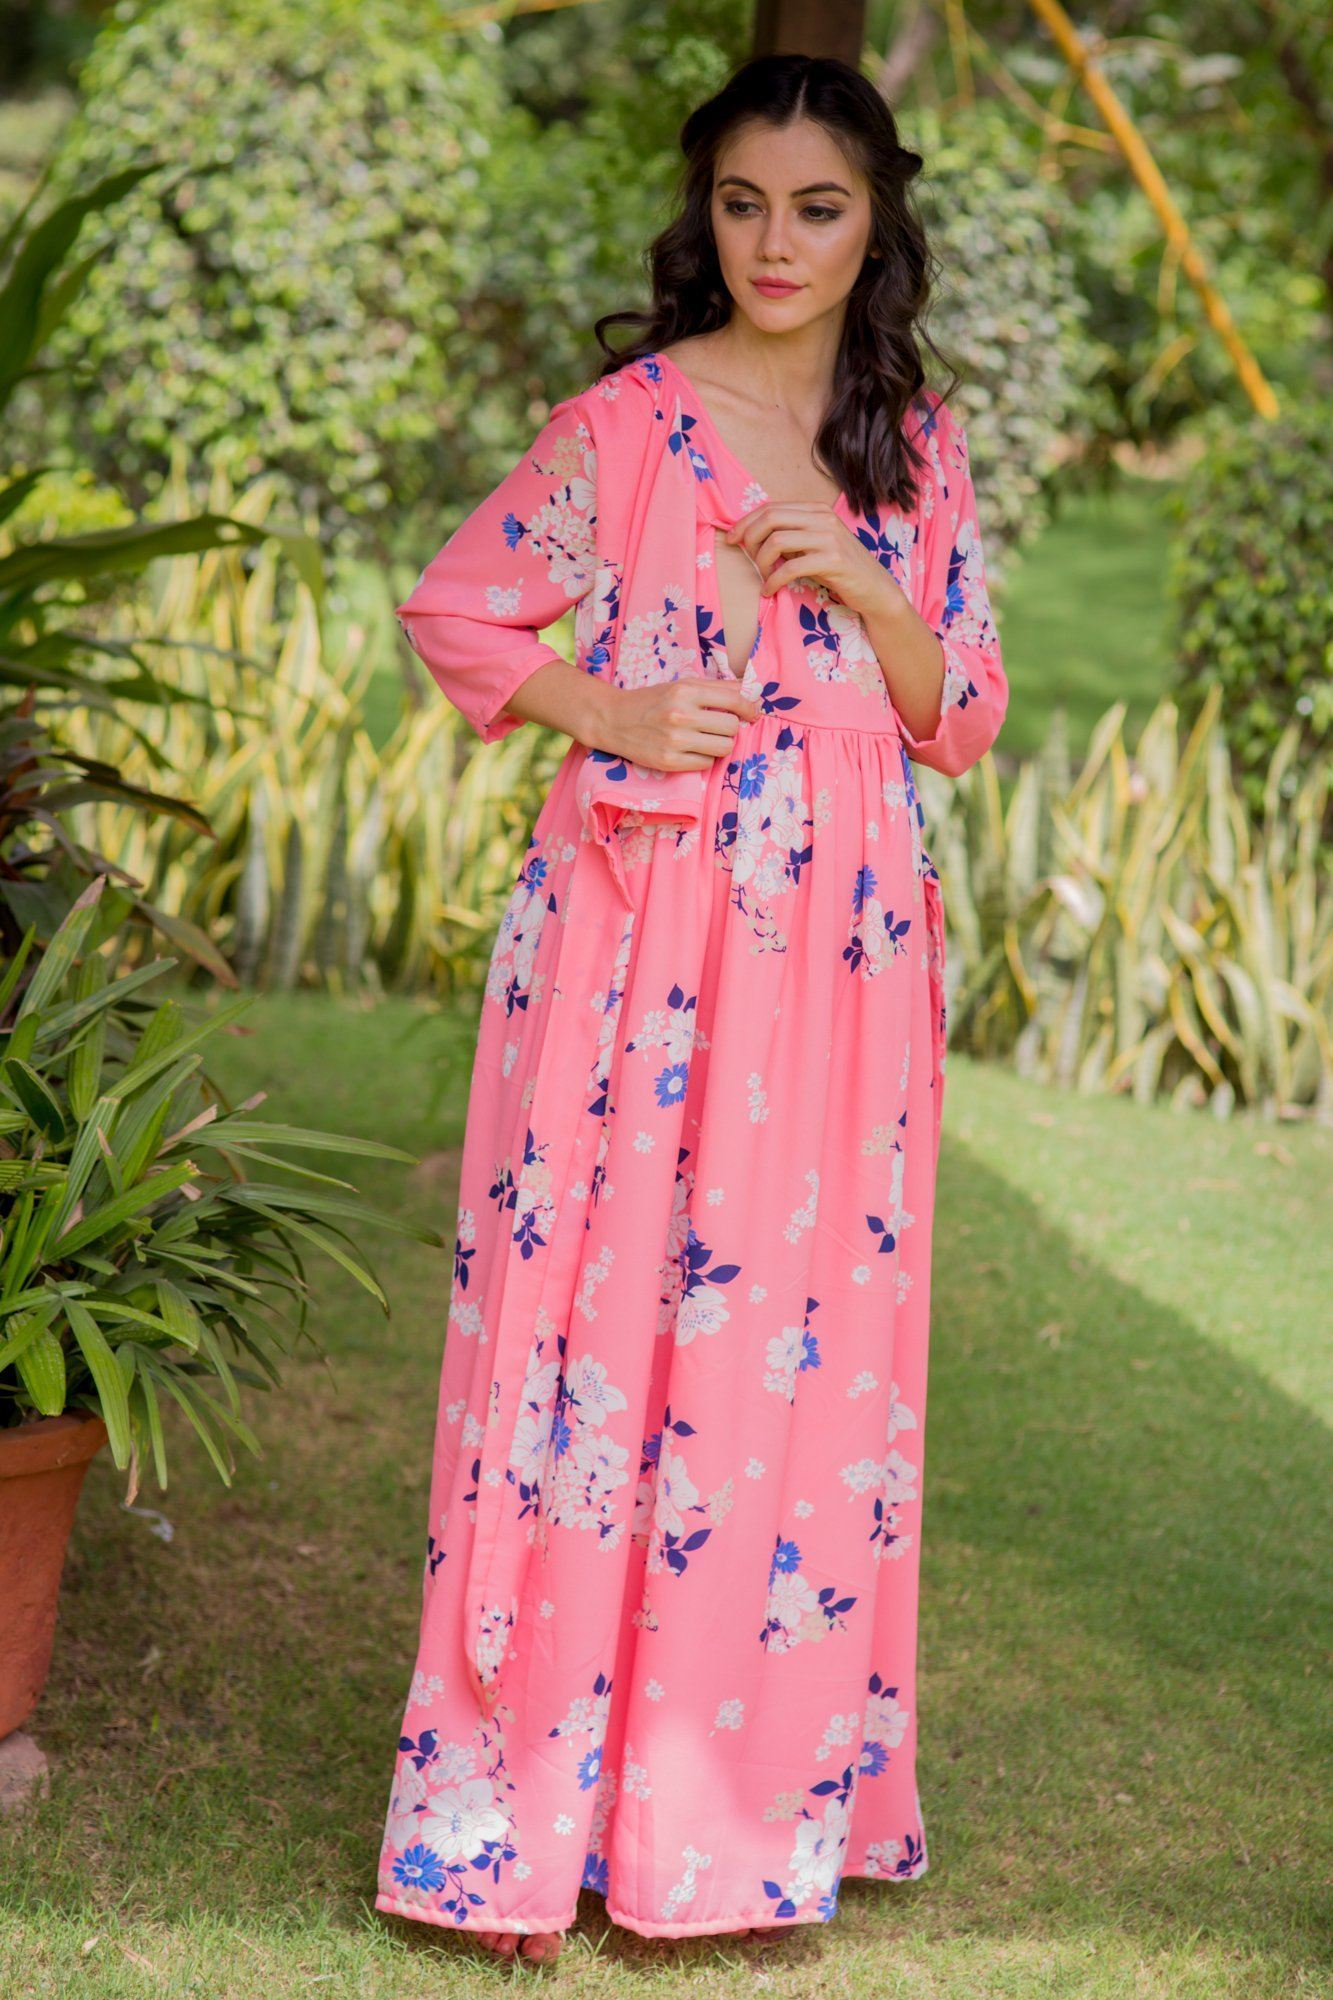 Plush Pink Floral Maternity & Nursing Crepe Wrap Dress